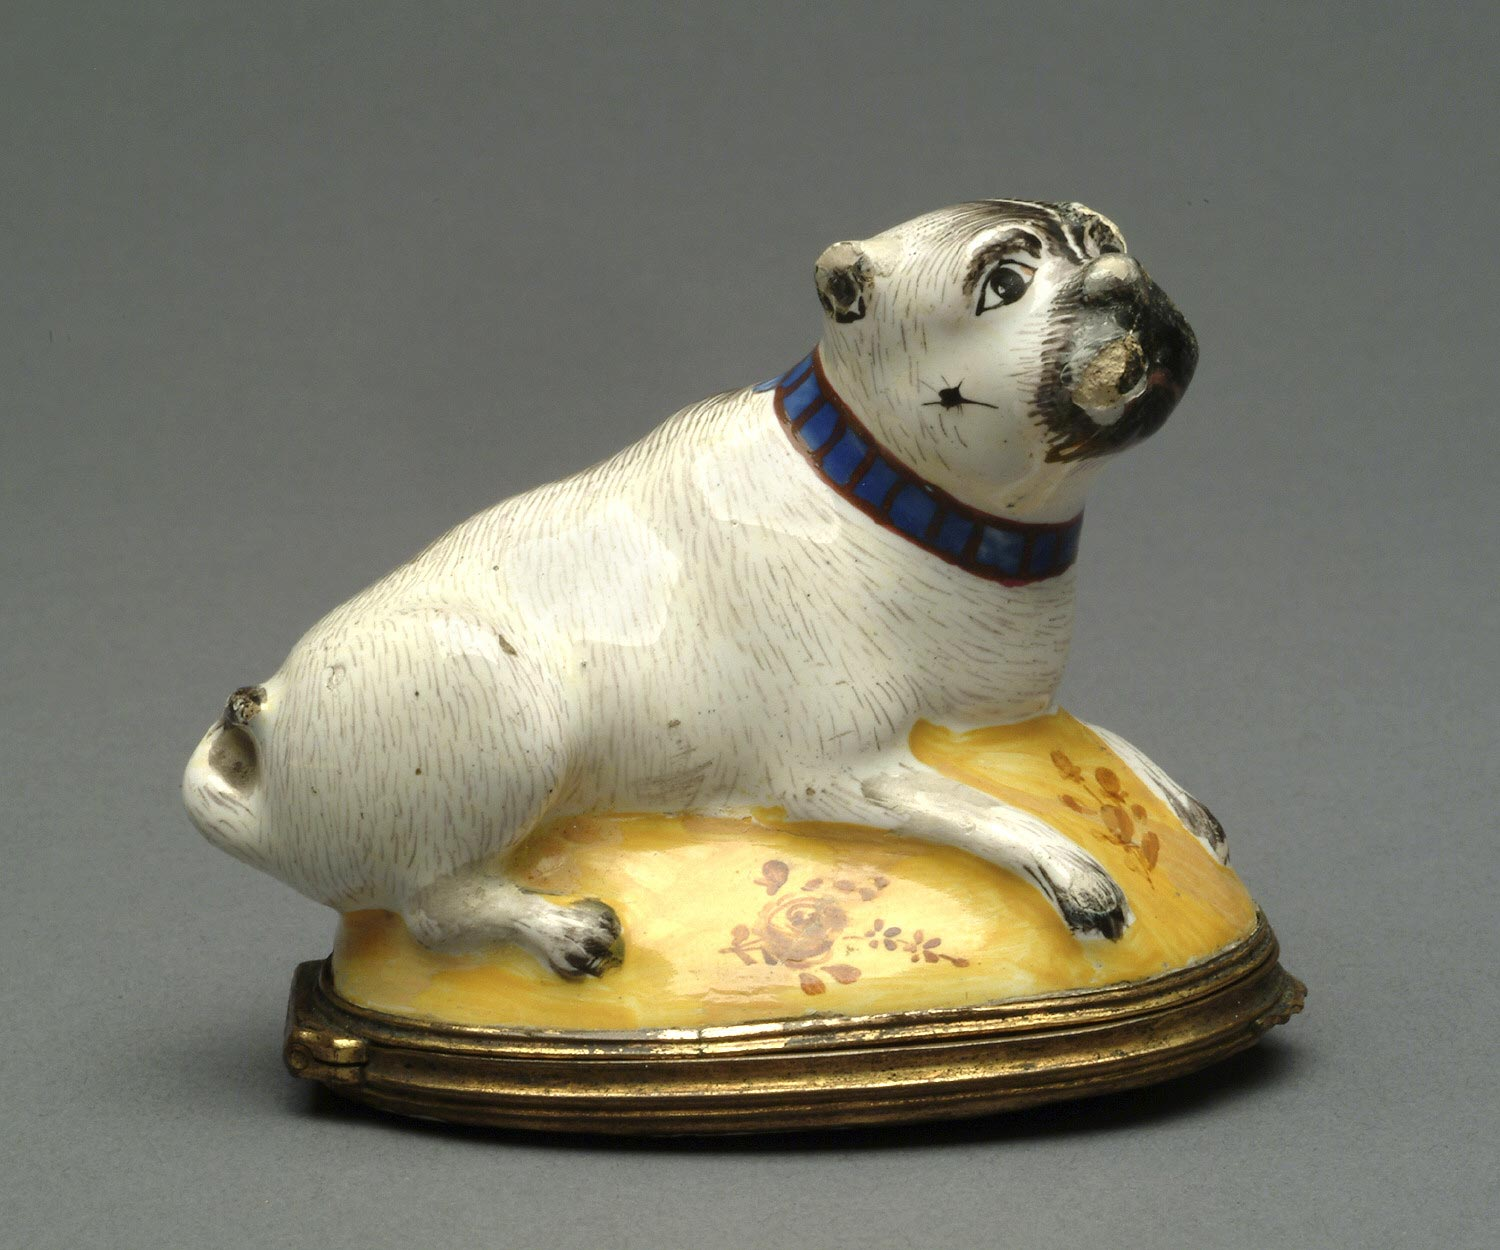 Bonbonnière (Sweets Box) in the Form of a Pug Dog